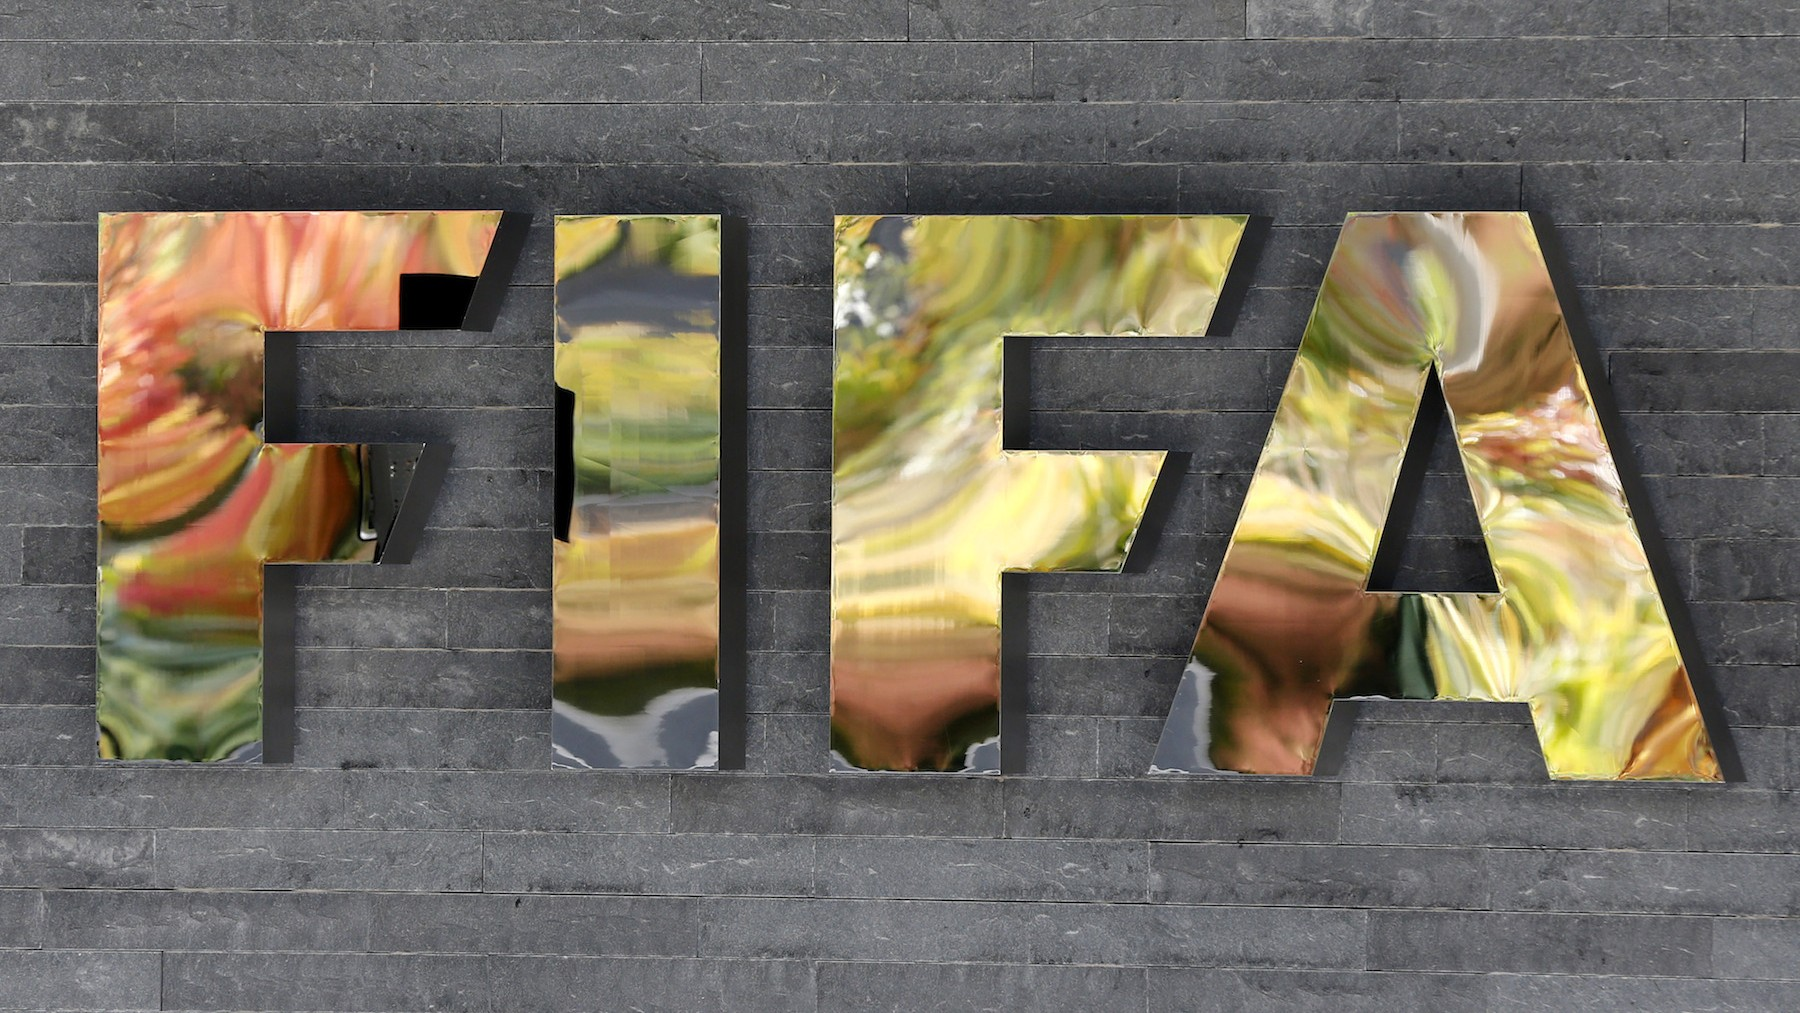 FIFA Decides: Rating the Presidential Candidate Speeches